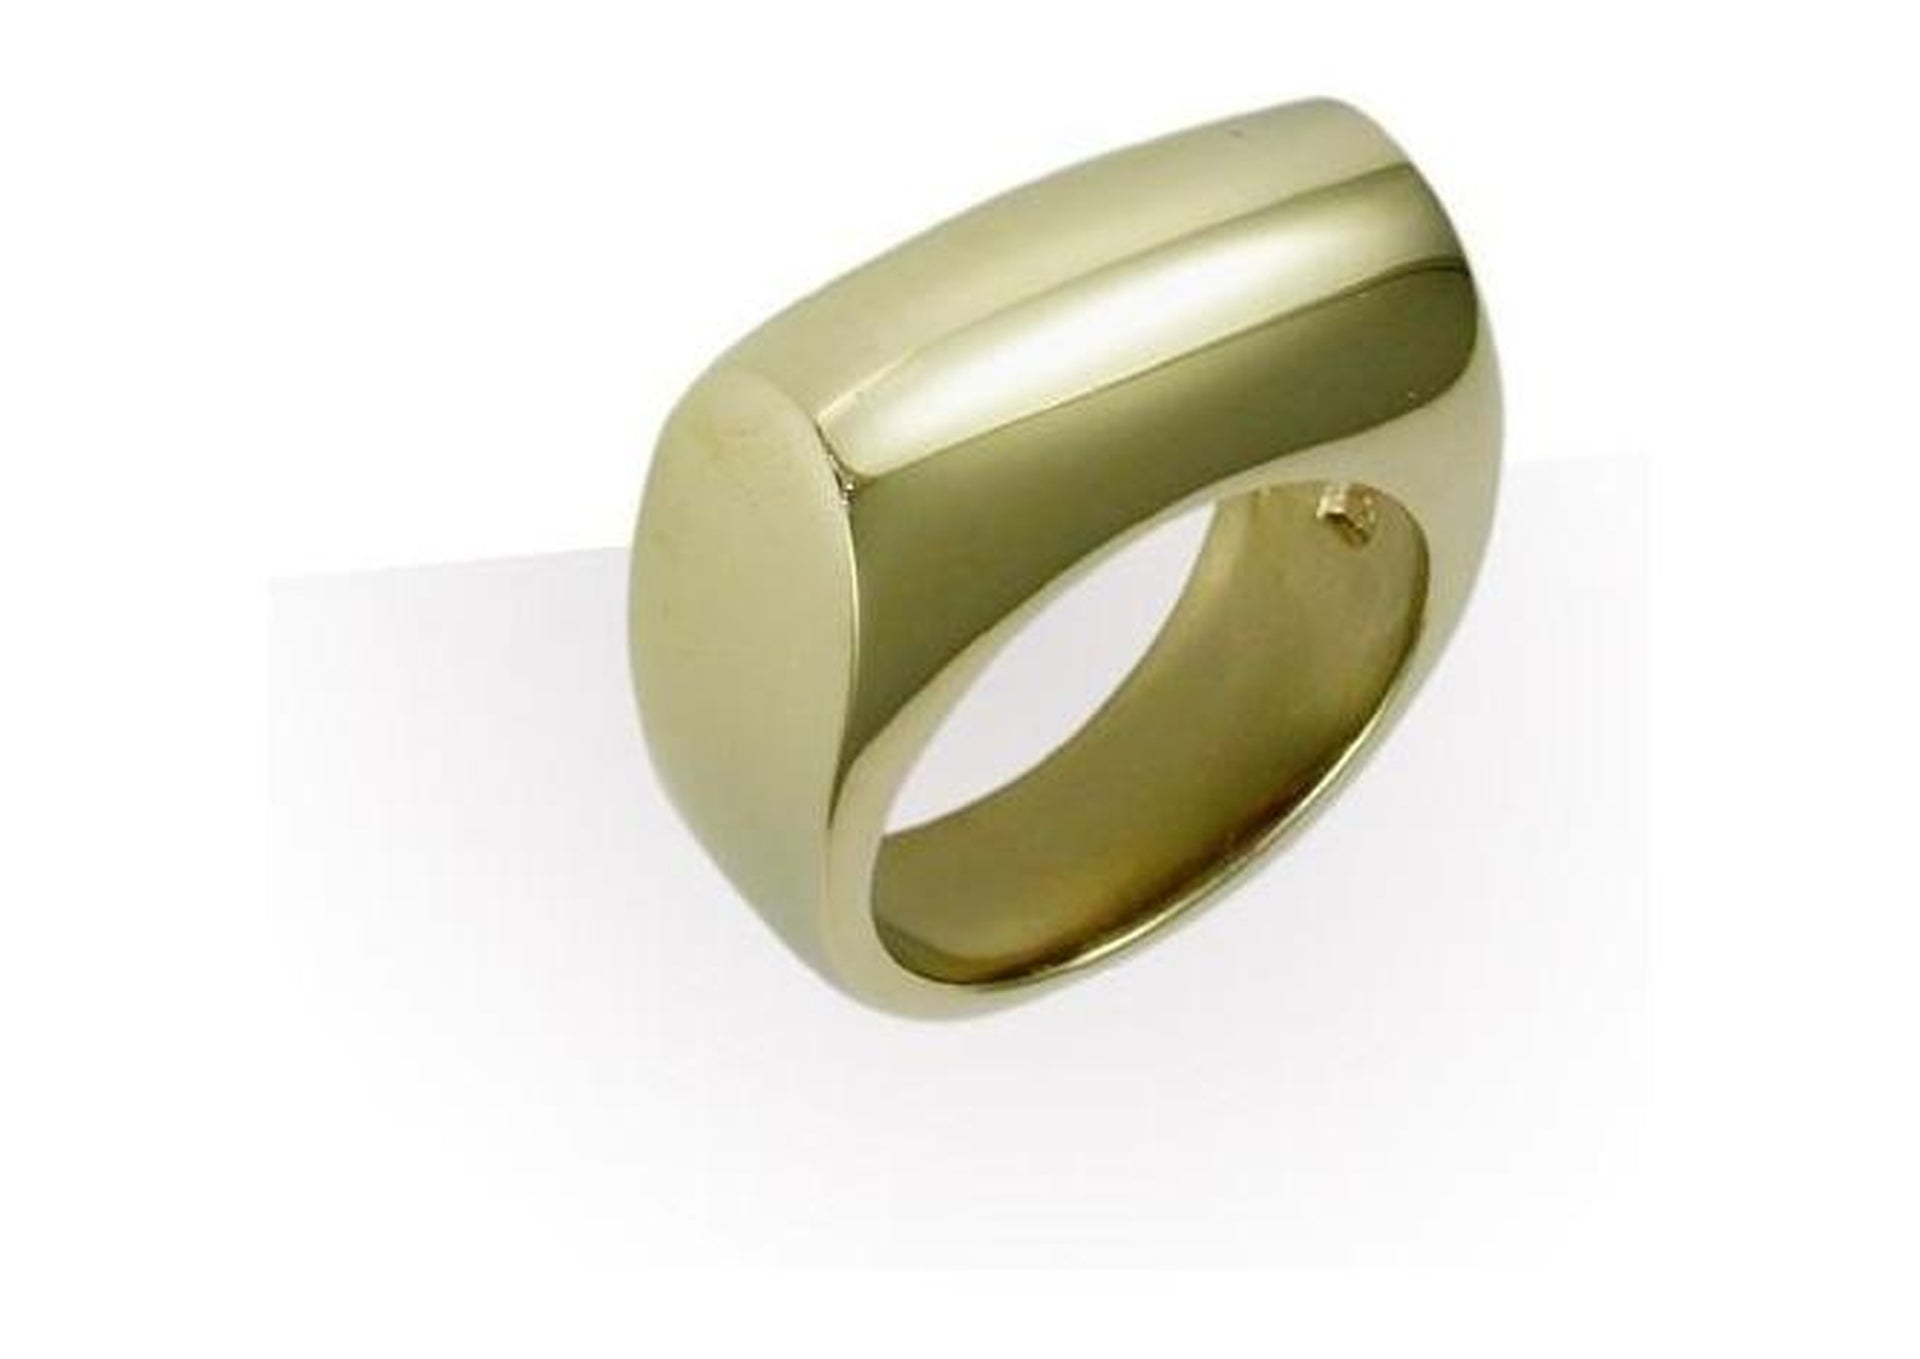 9ct Gold Dome Ring   - Jens Hansen